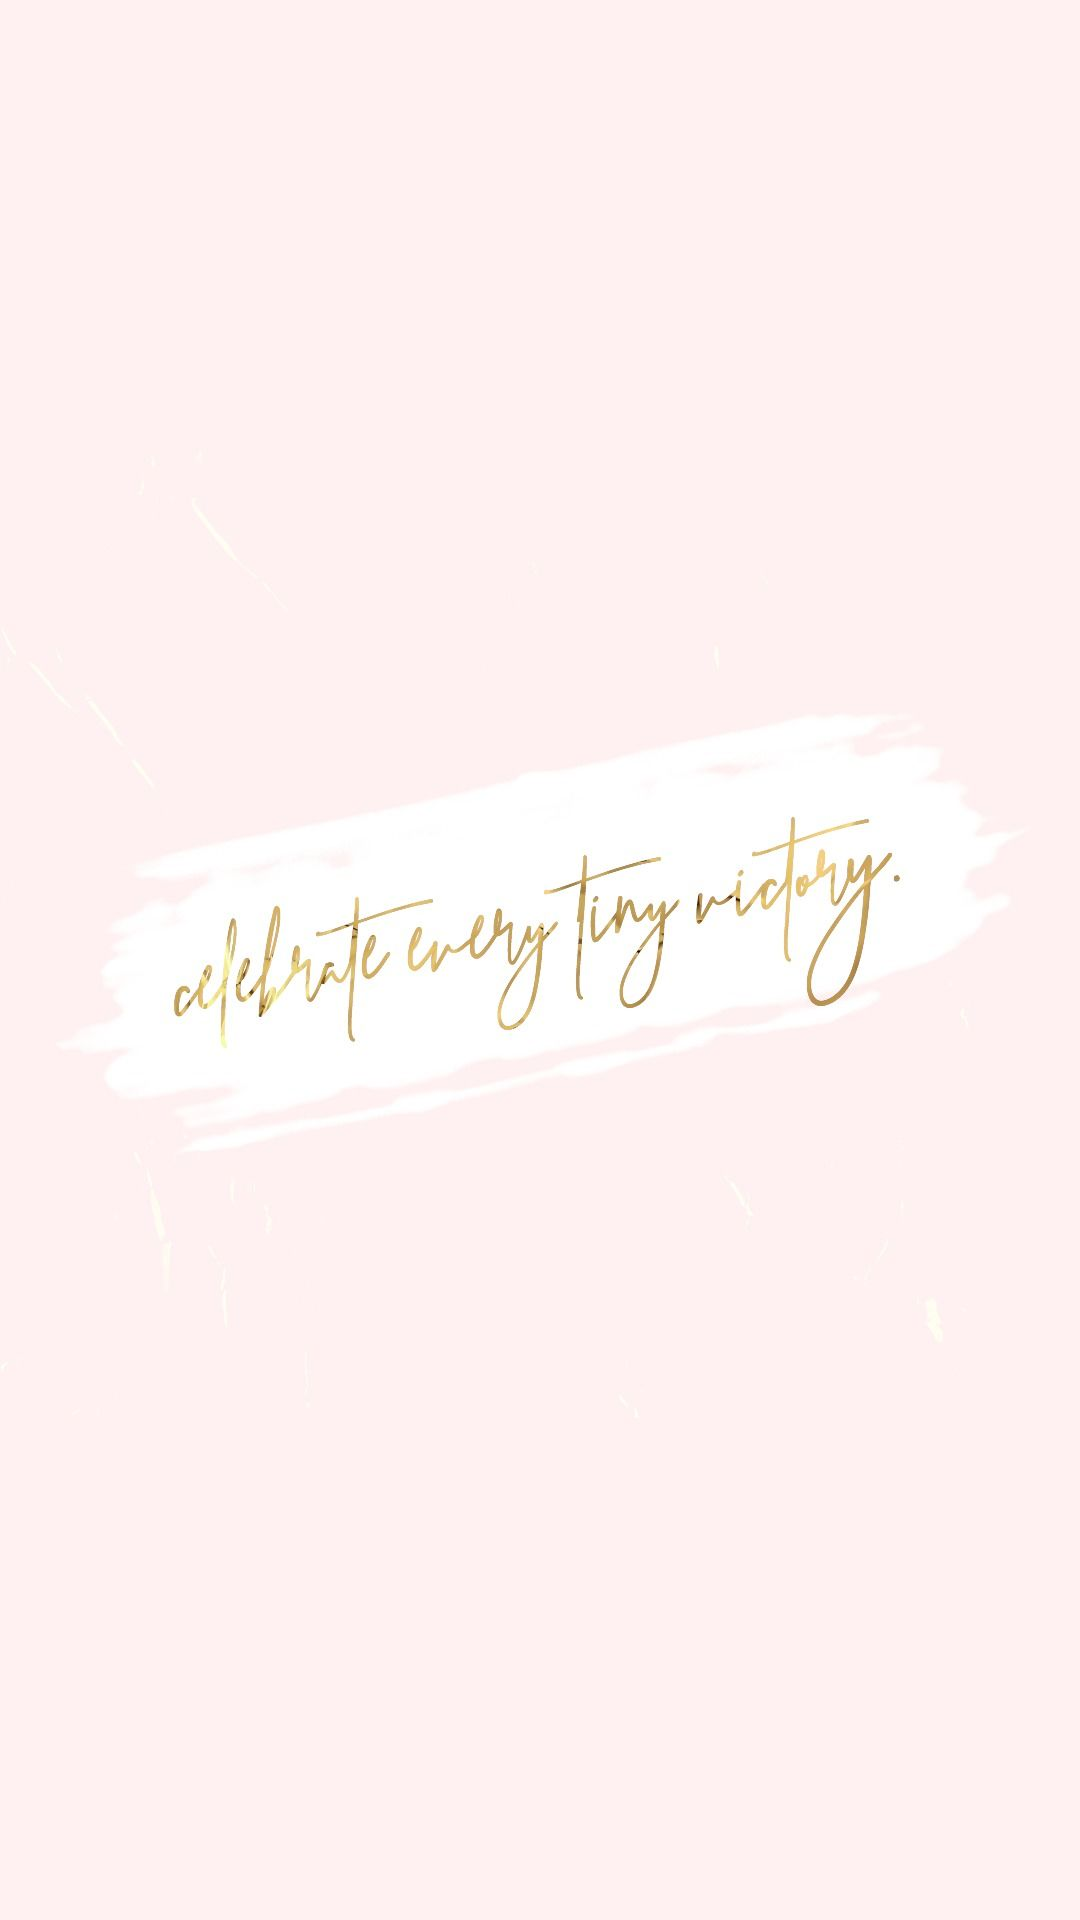 Pink Motivational Quotes Wallpapers Top Free Pink Motivational Quotes Backgrounds Wallpaperaccess